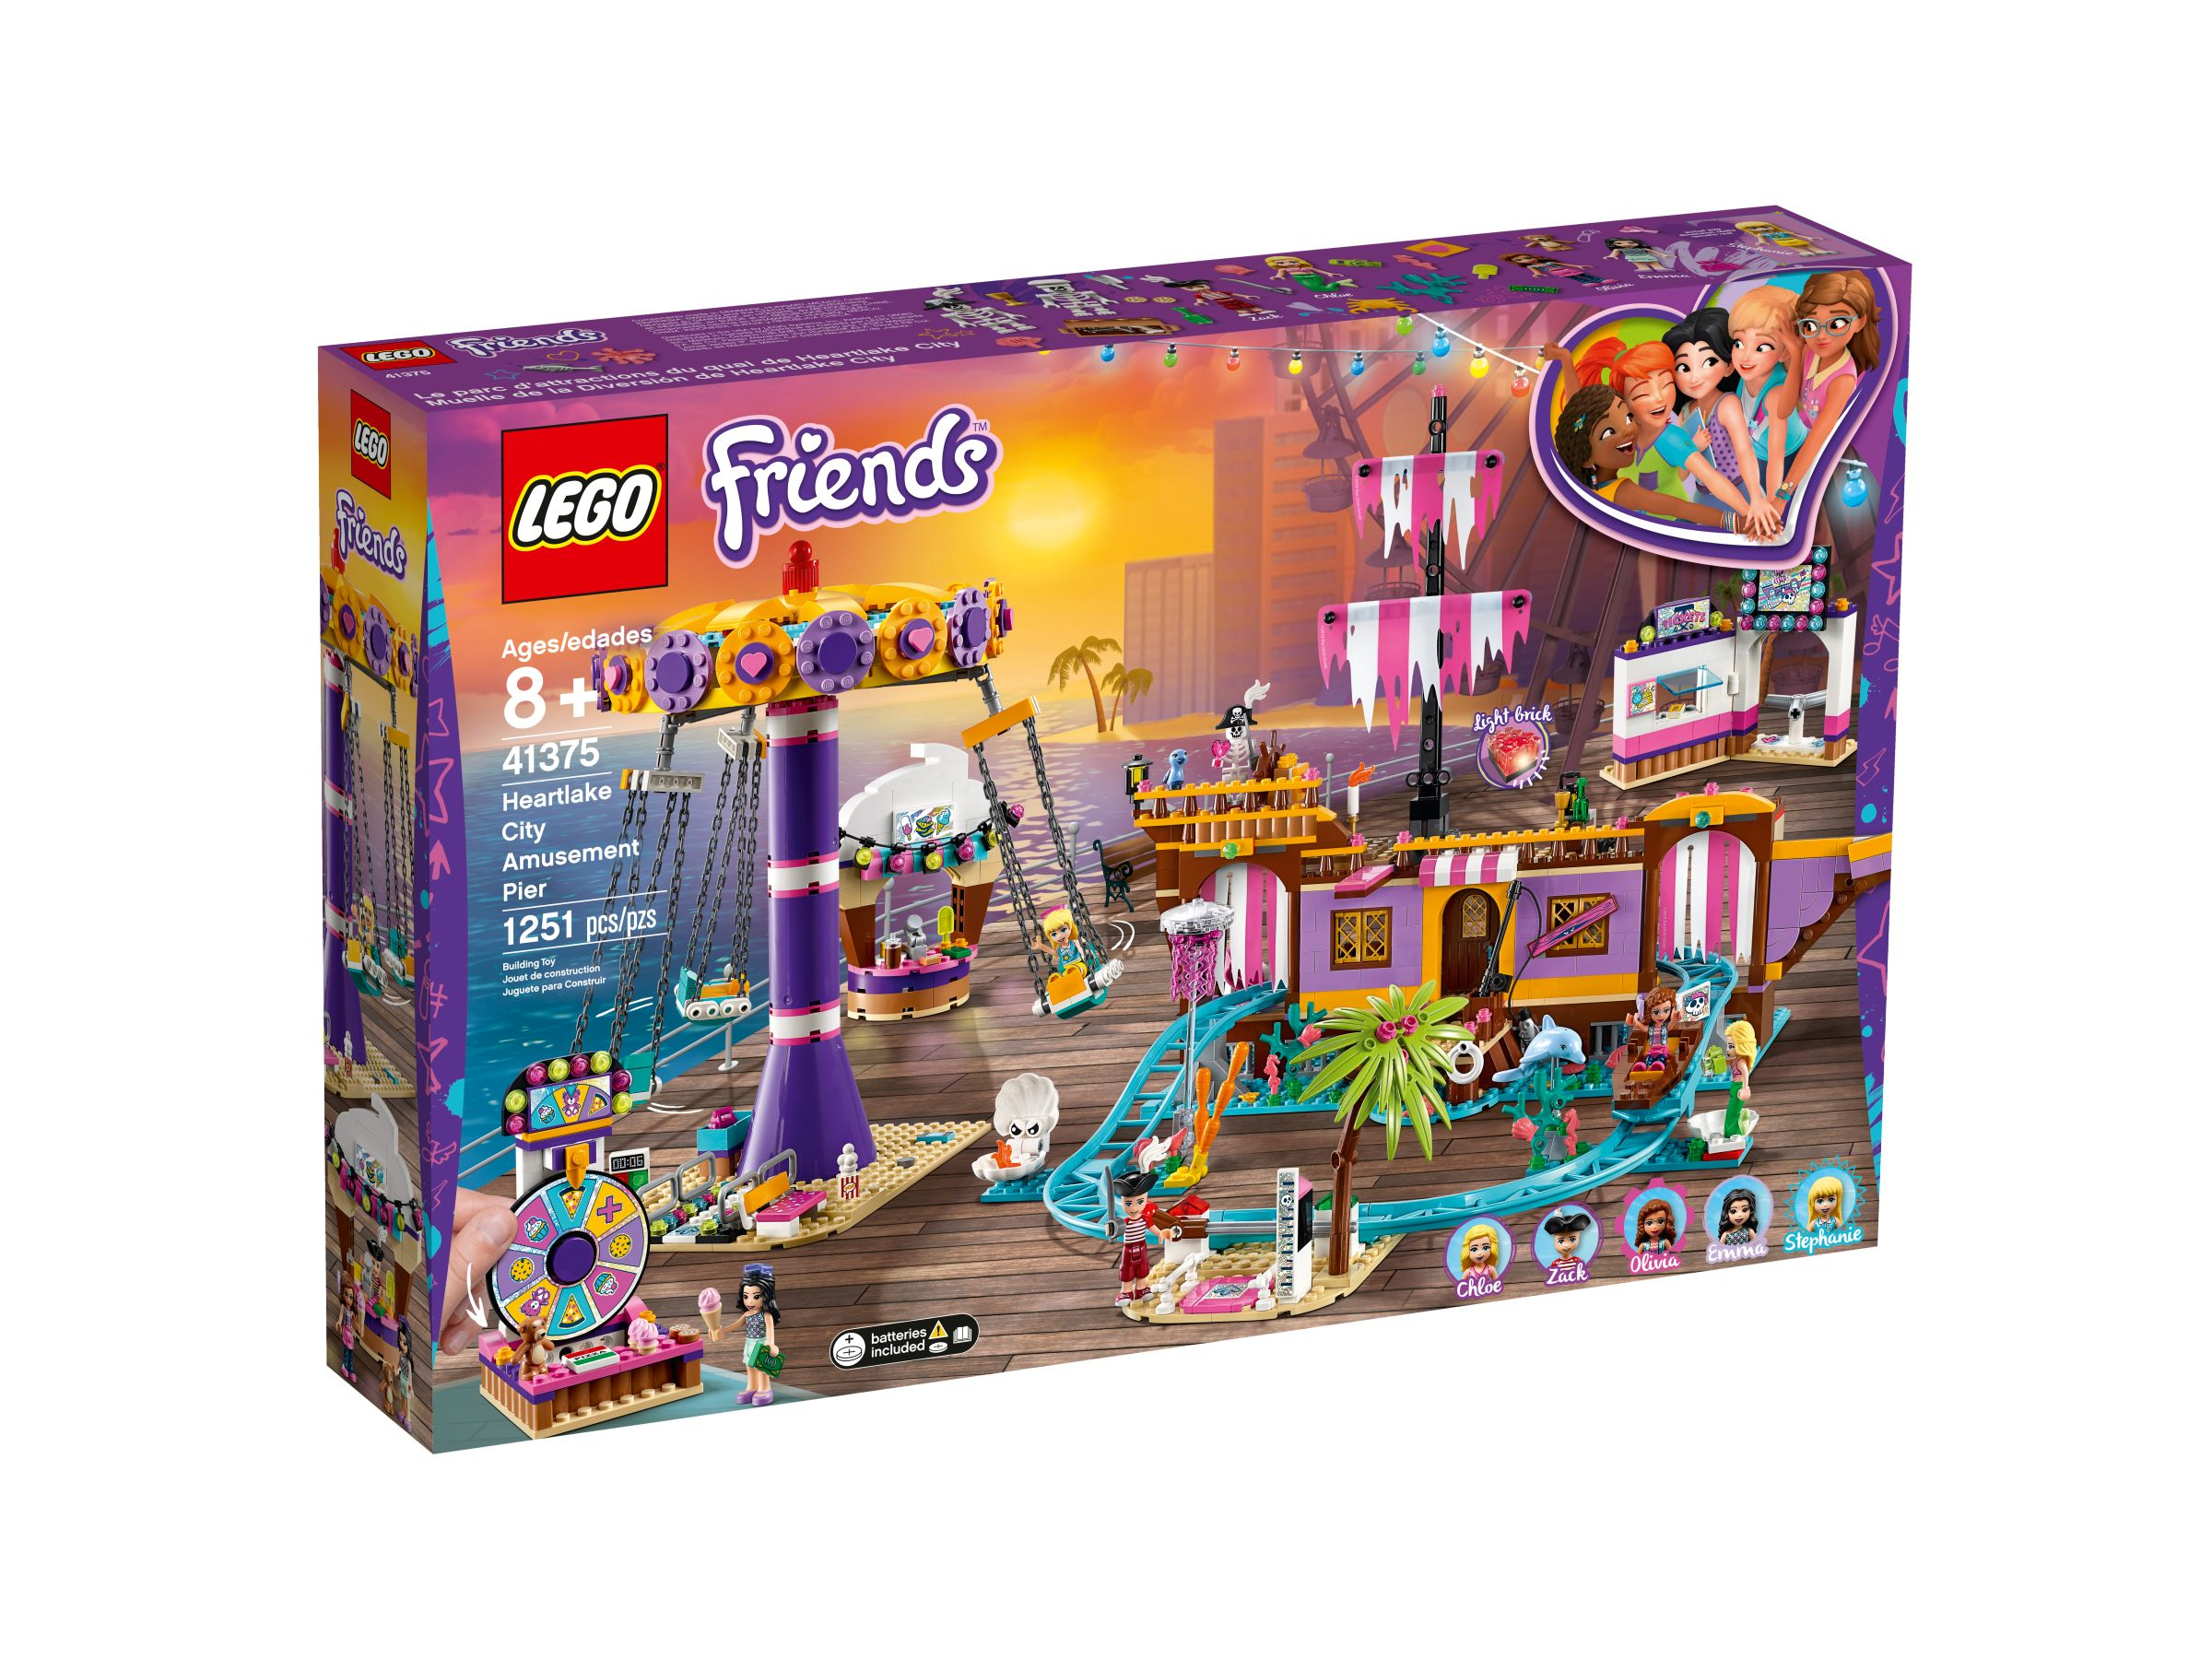 LEGO Friends 41375 Vergnügungspark von Heartlake City LEGO_41375_alt1.jpg